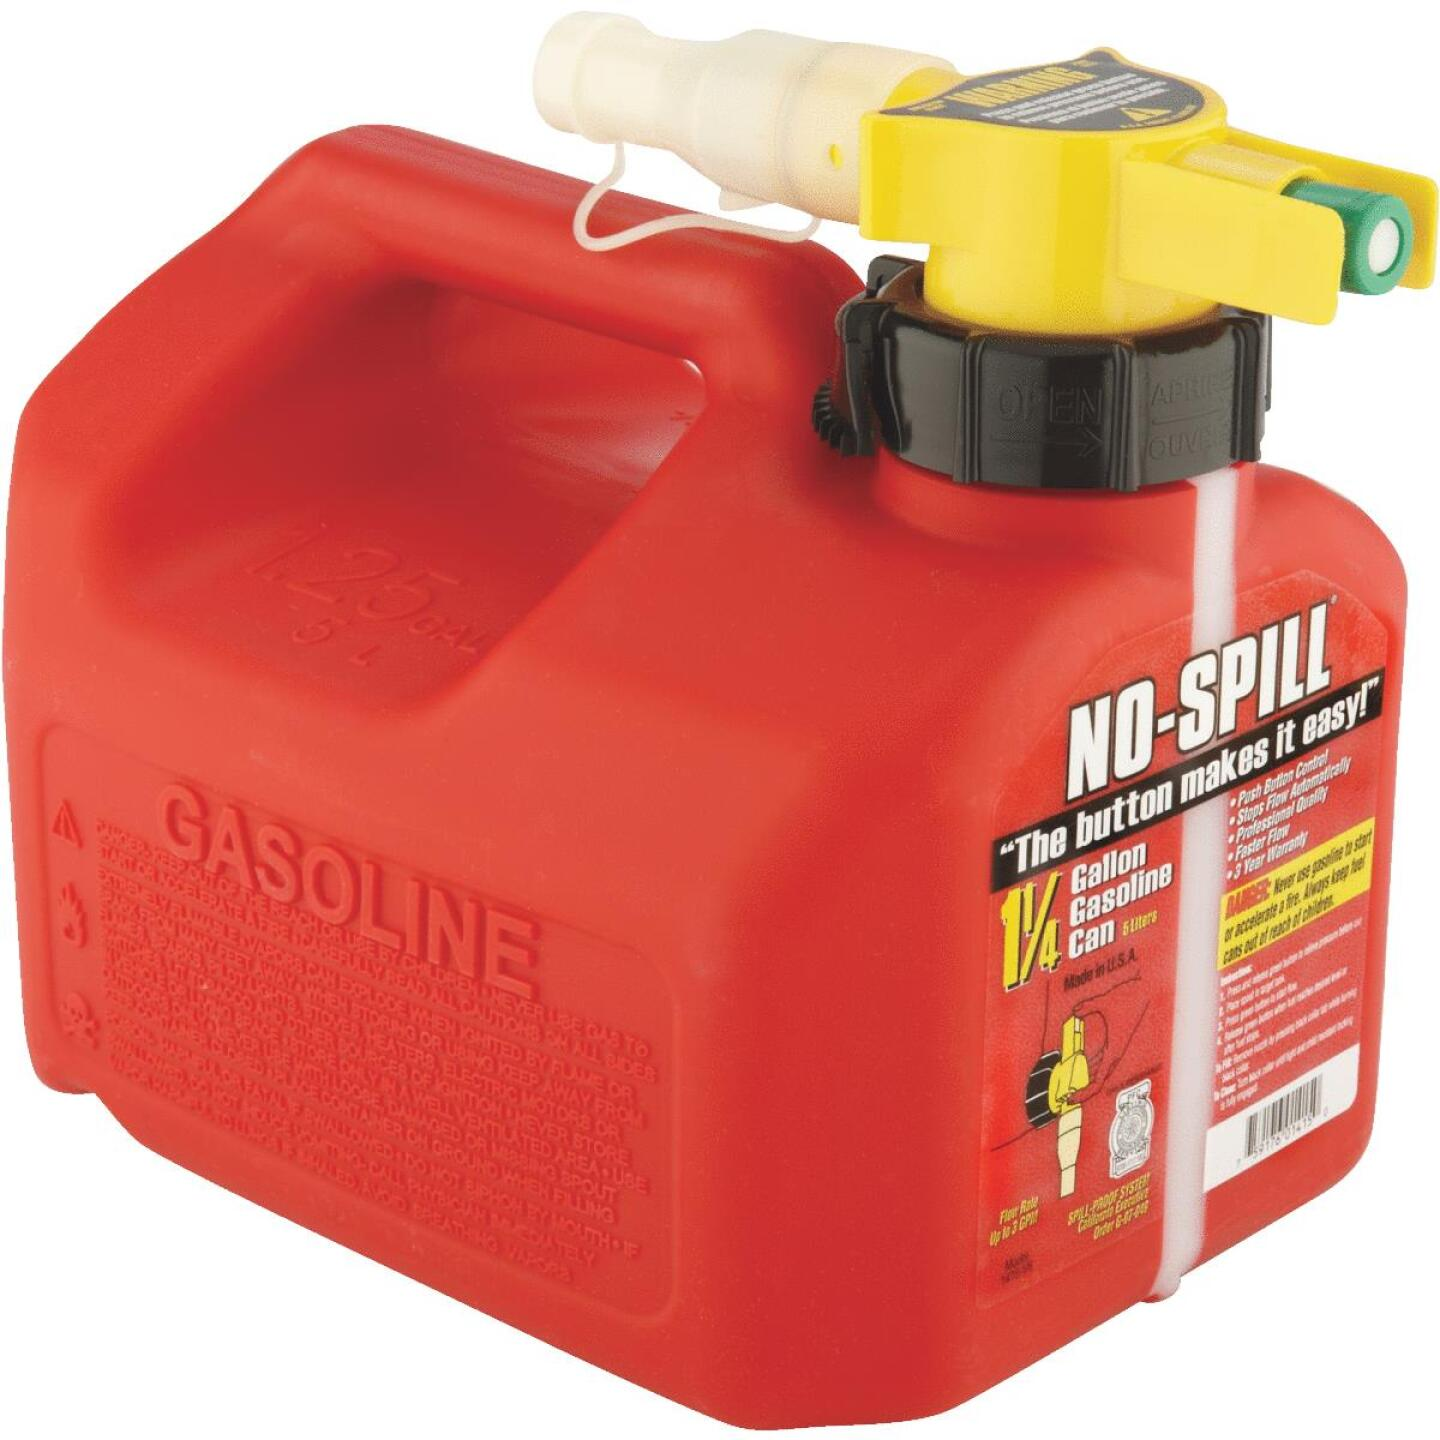 No-Spill 1-1/4 Gal. Plastic Gasoline Fuel Can, Red Image 4